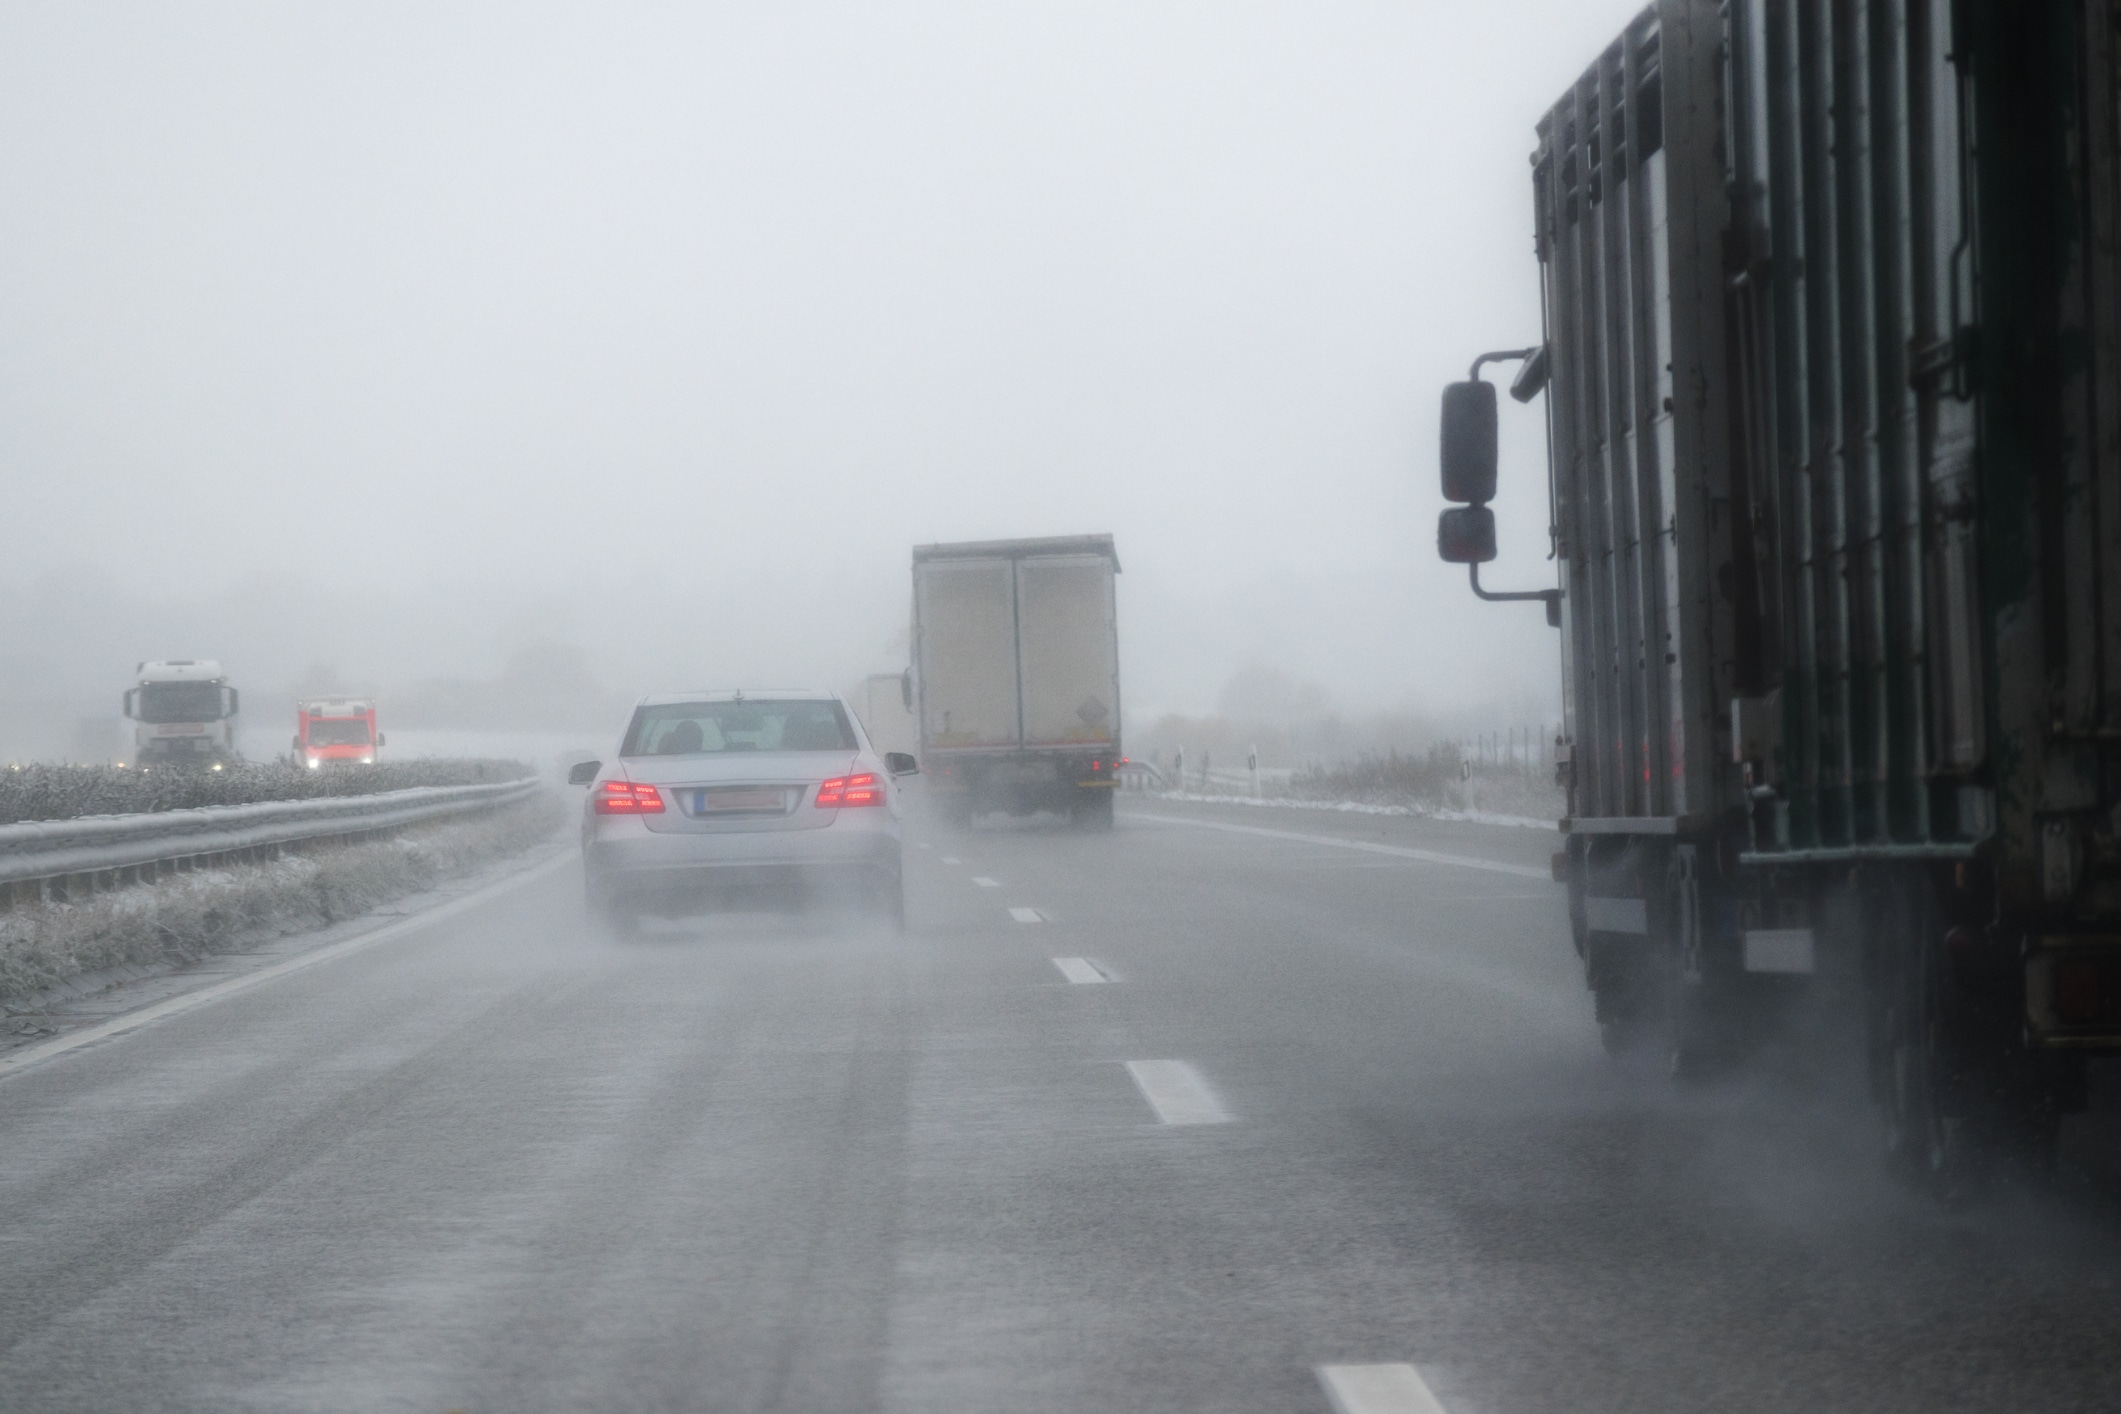 Cars and trucks driving on the highway in a snow storm